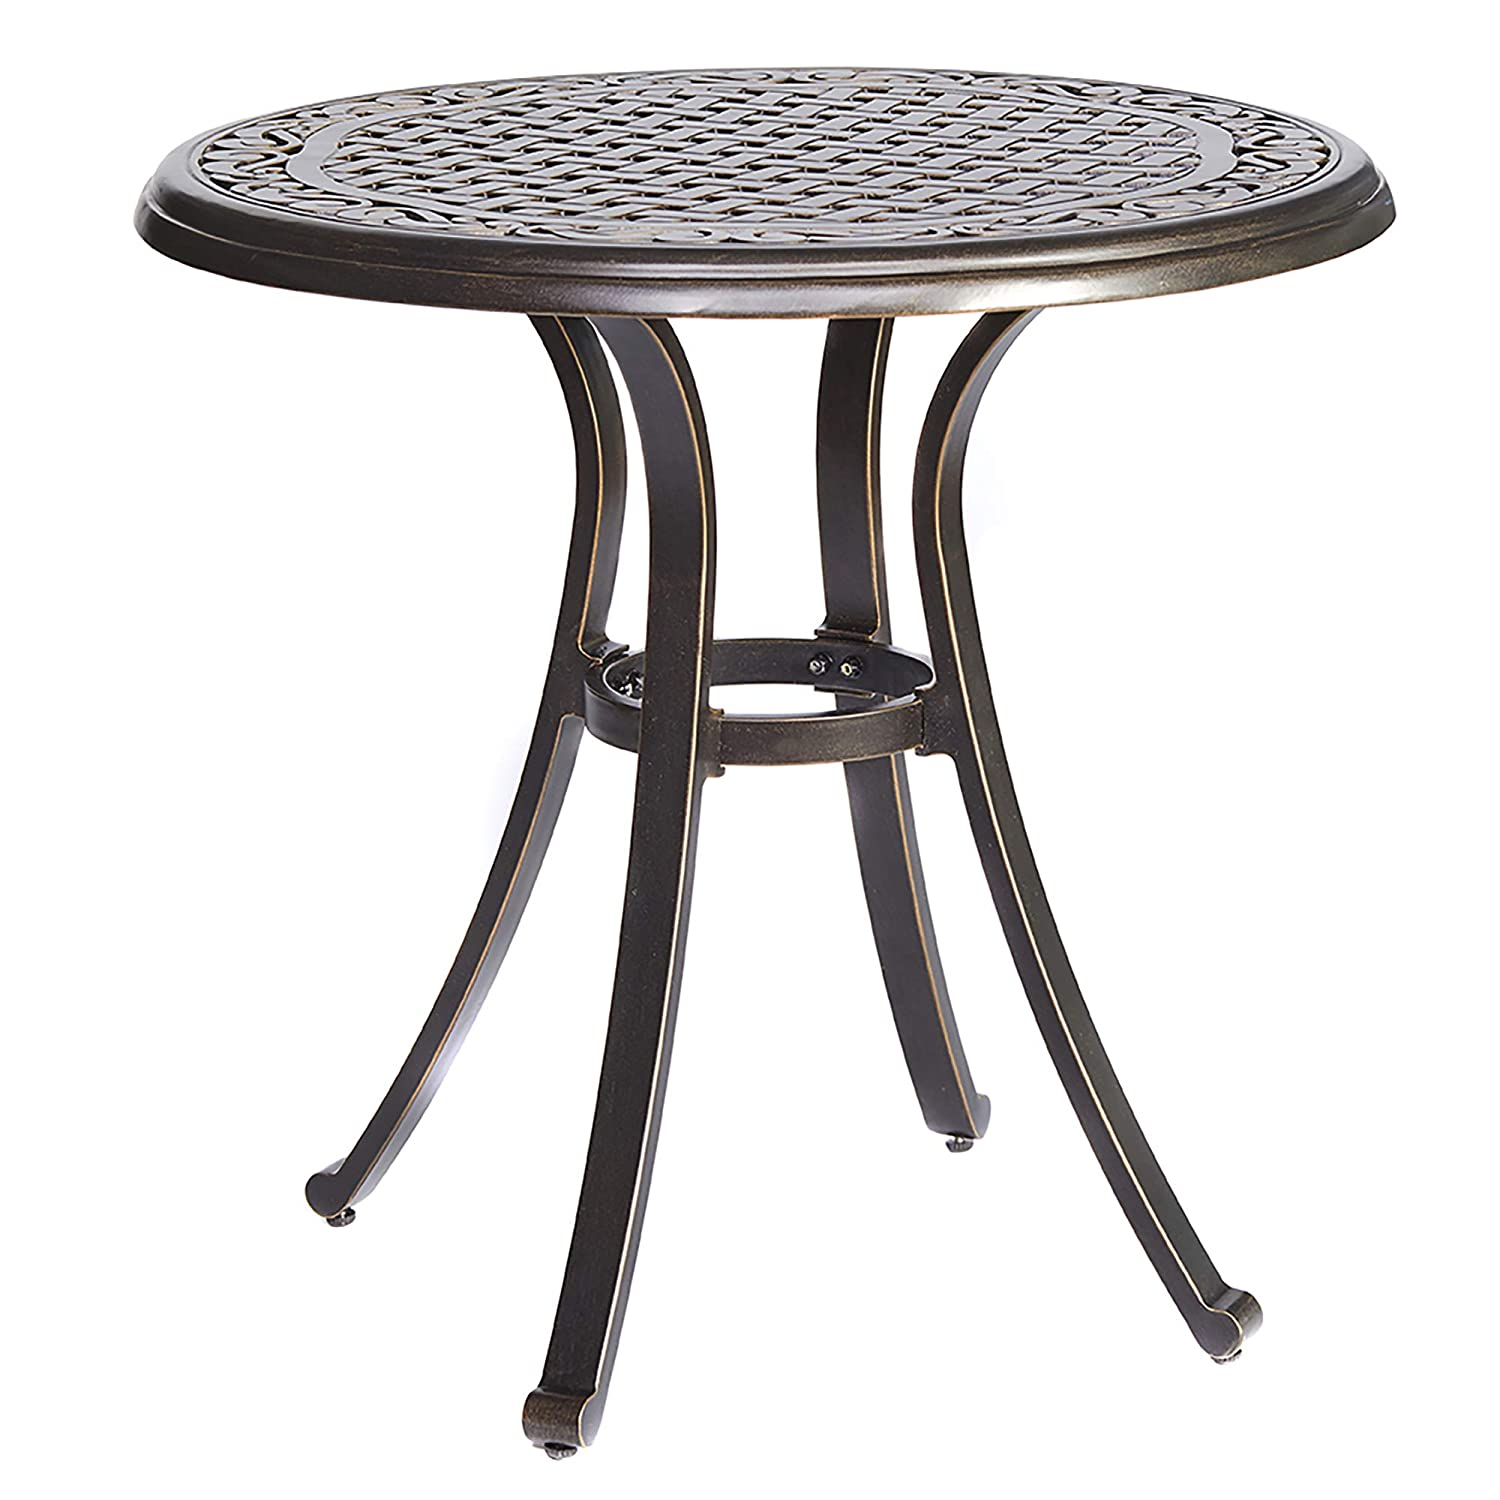 """dali Bistro Table, Square Cast Aluminum Round Outdoor Patio Dining Table 28"""" Dia x 28.6"""" Height"""